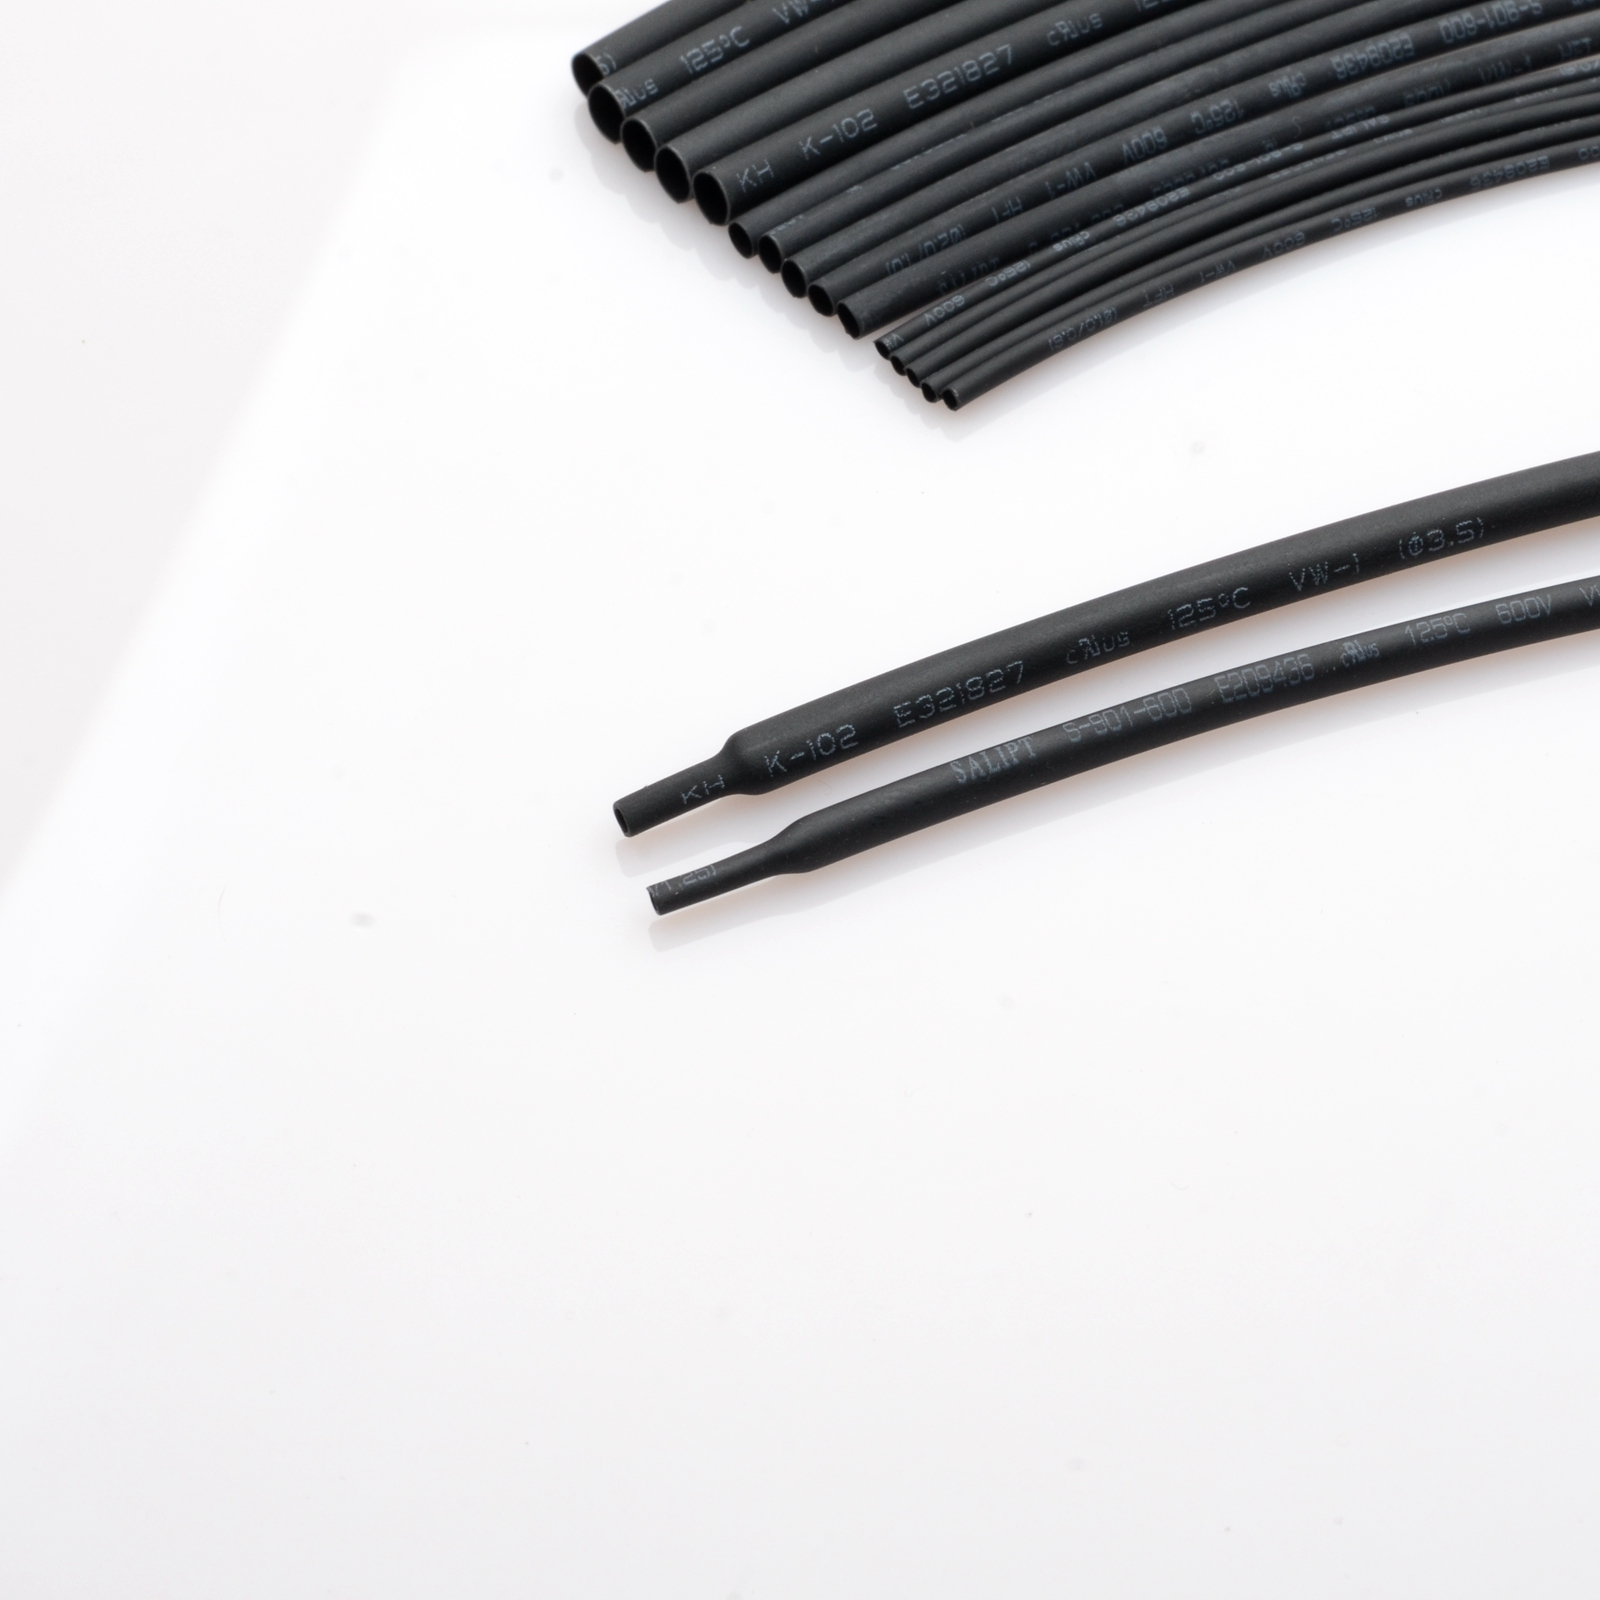 Black 1 Meter/Lot Contraction Ratio 2:1 1 to 10mm Diameter Heat Shrink Heatshrink Tubing Tube Sleeving  DIY Connector Repair